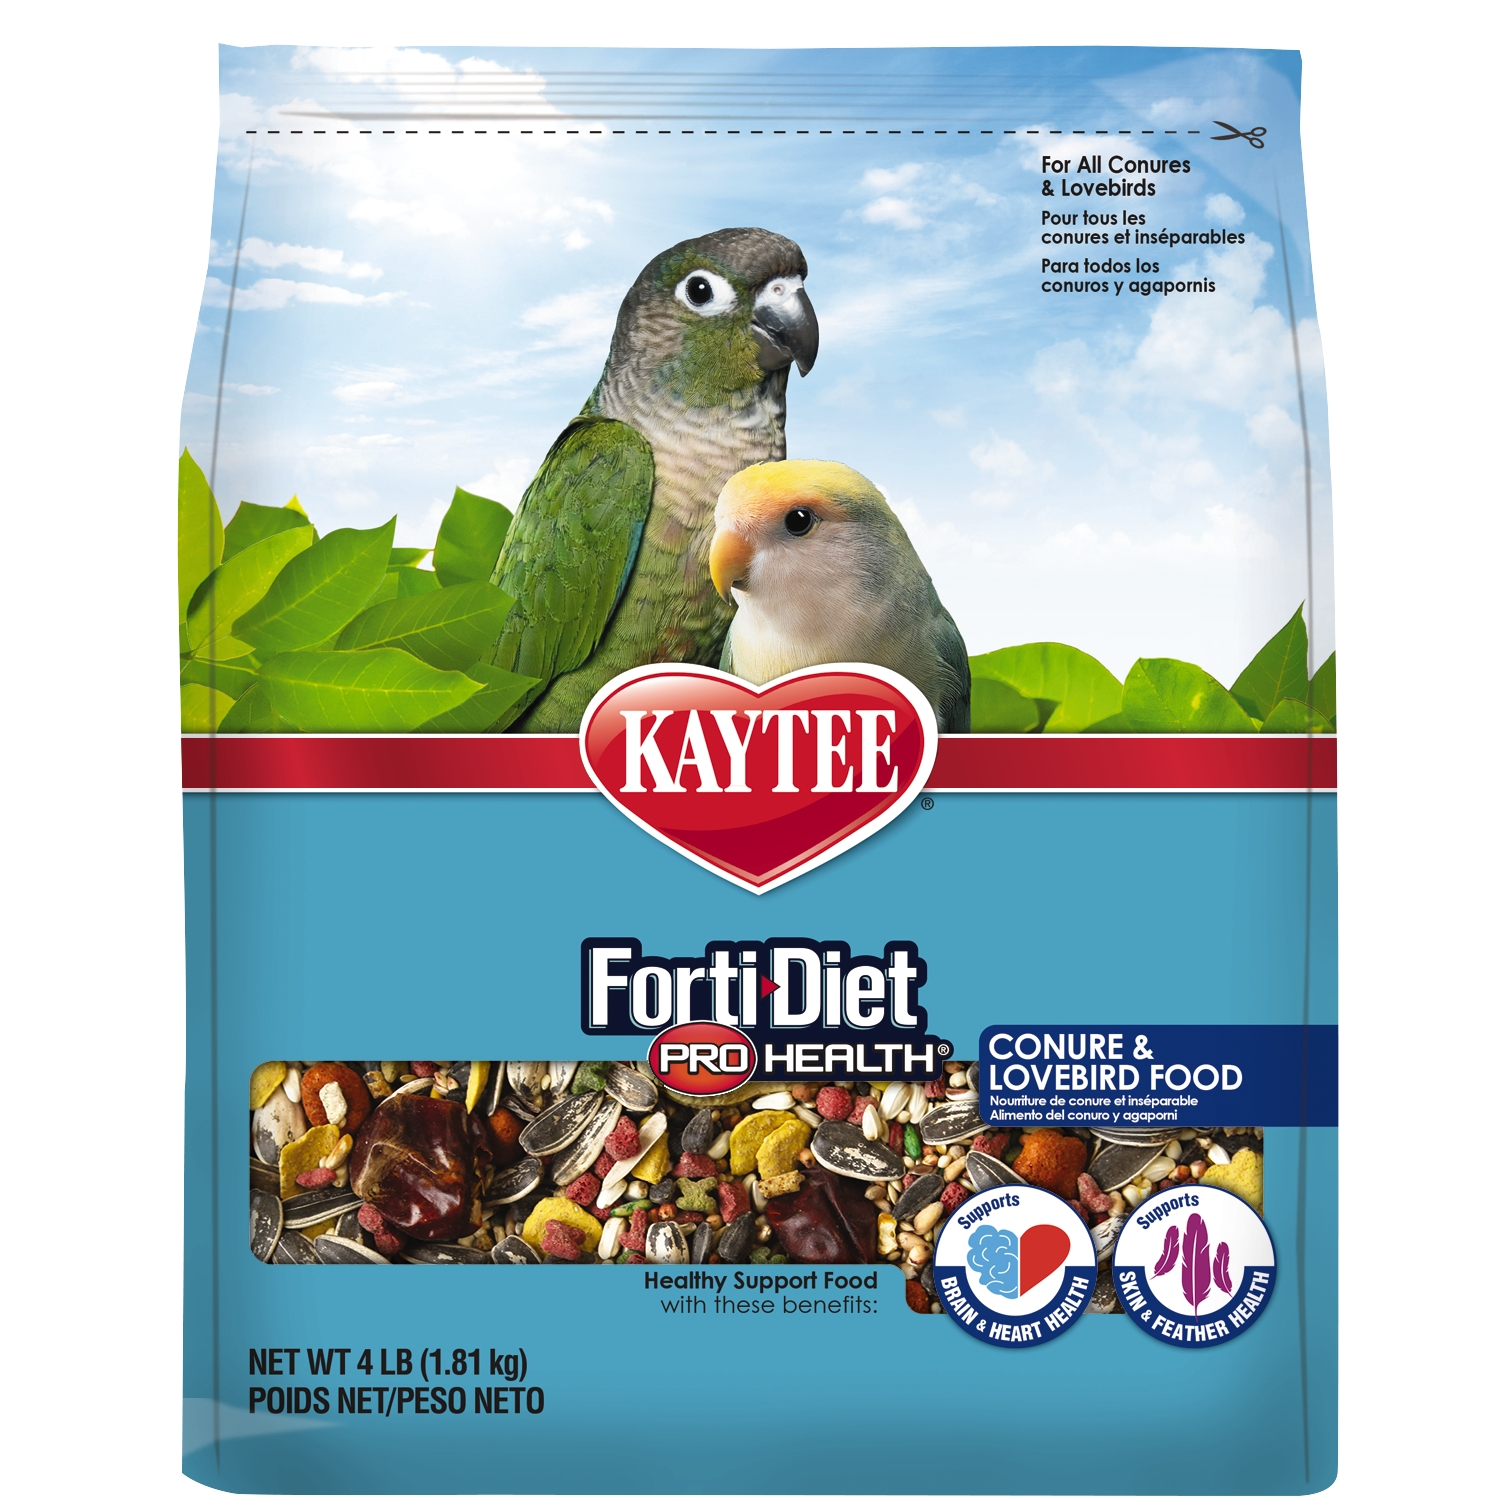 Kaytee Forti-Diet Pro Health Feather Conure & Lovebird Food, 4-lbs